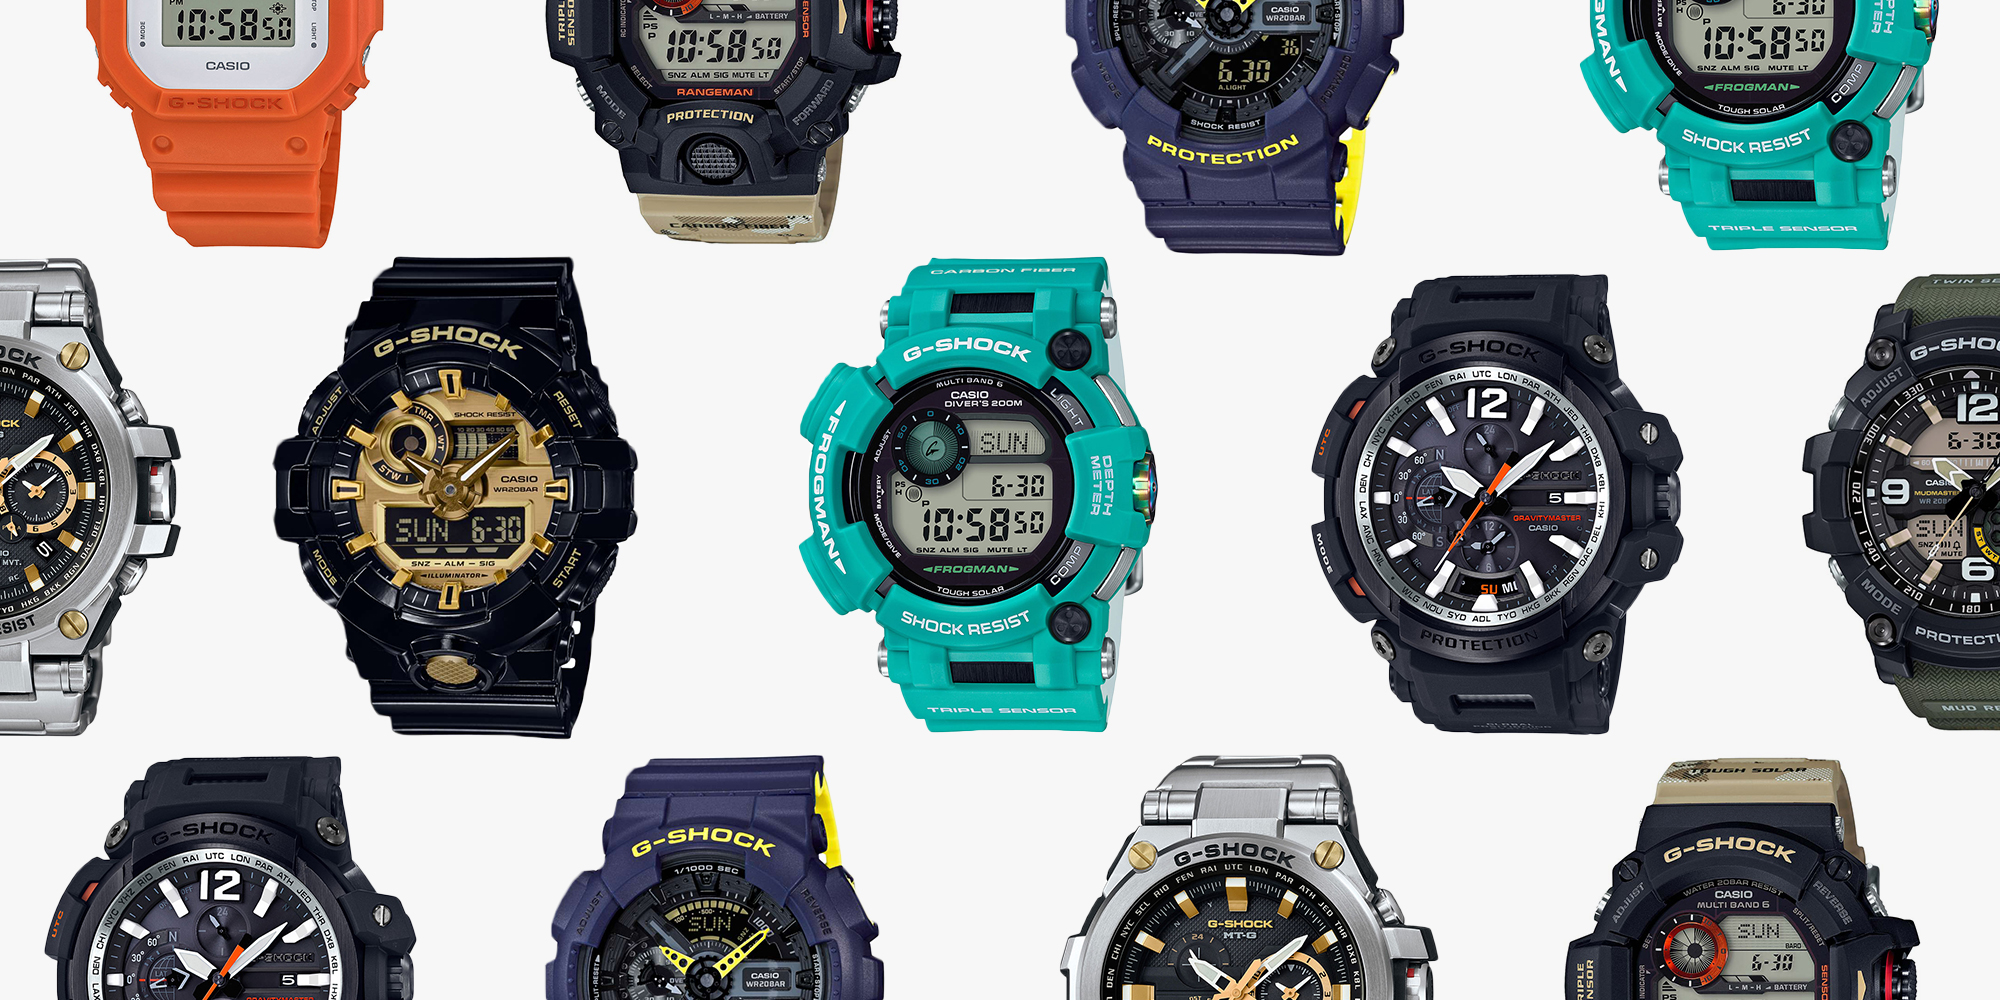 Top 10 Tech Cars To Watch For In 2018: 10 Best G SHOCK Watches For 2018